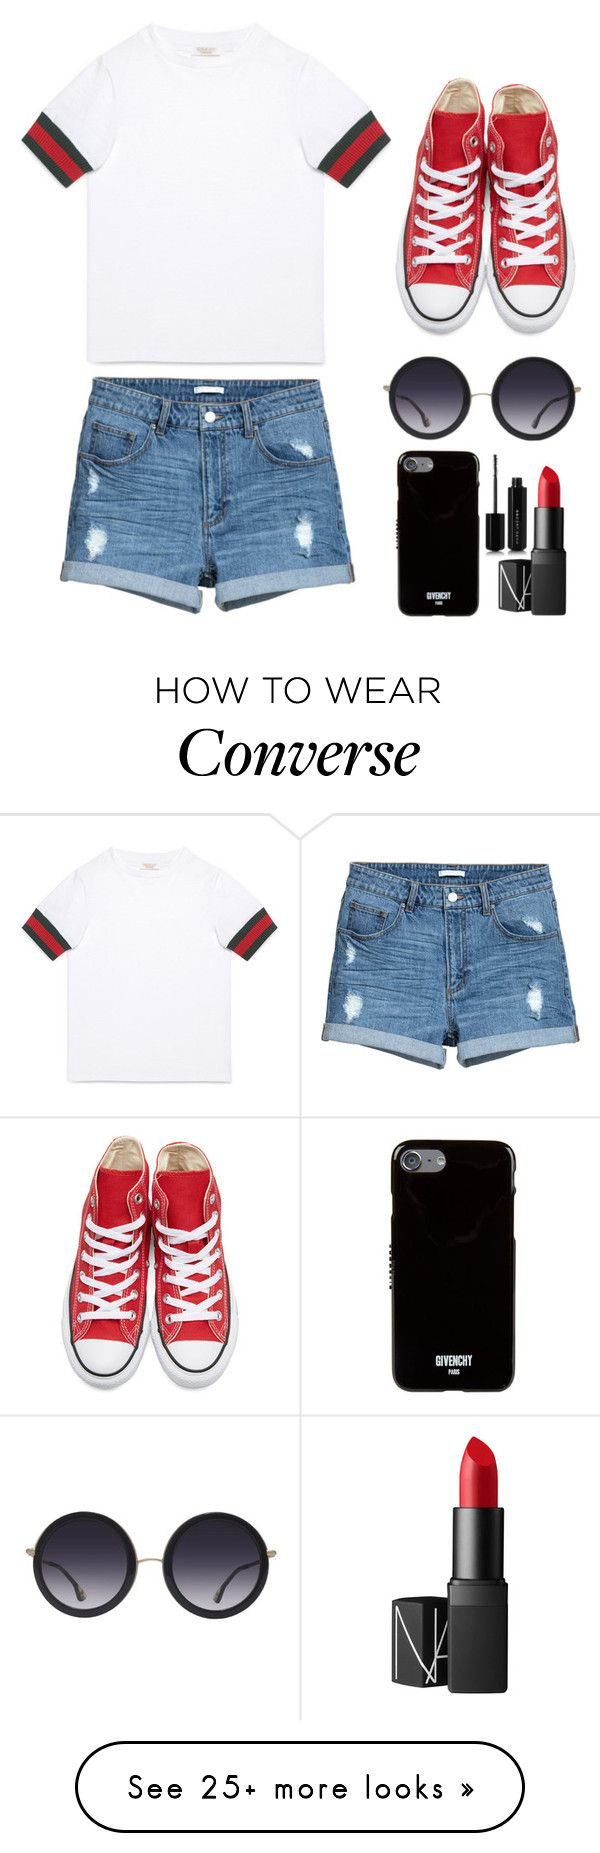 """""""""""Denim"""" Outfit #5"""" by fedelinewiarta on Polyvore featuring Gucci, Converse, NARS Cosmetics, Alice + Olivia, Givenchy and Marc Jacobs"""